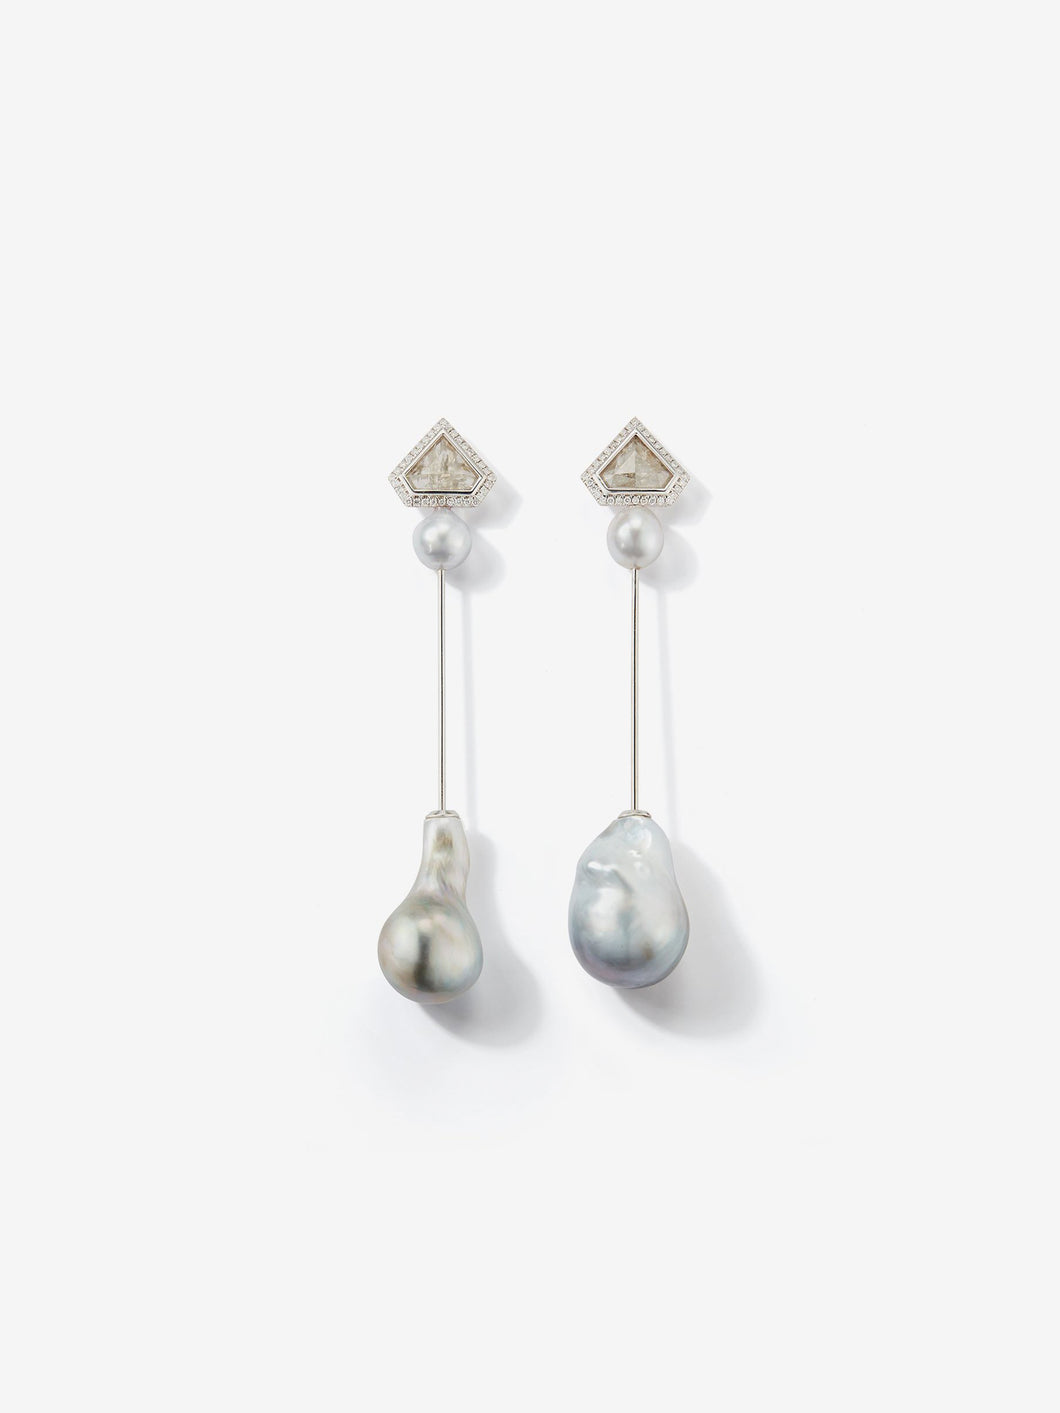 Prive Collection.  One Of A Kind.  Kanzashi Earrings.  Baroque Pearls and Slice Diamonds MP92